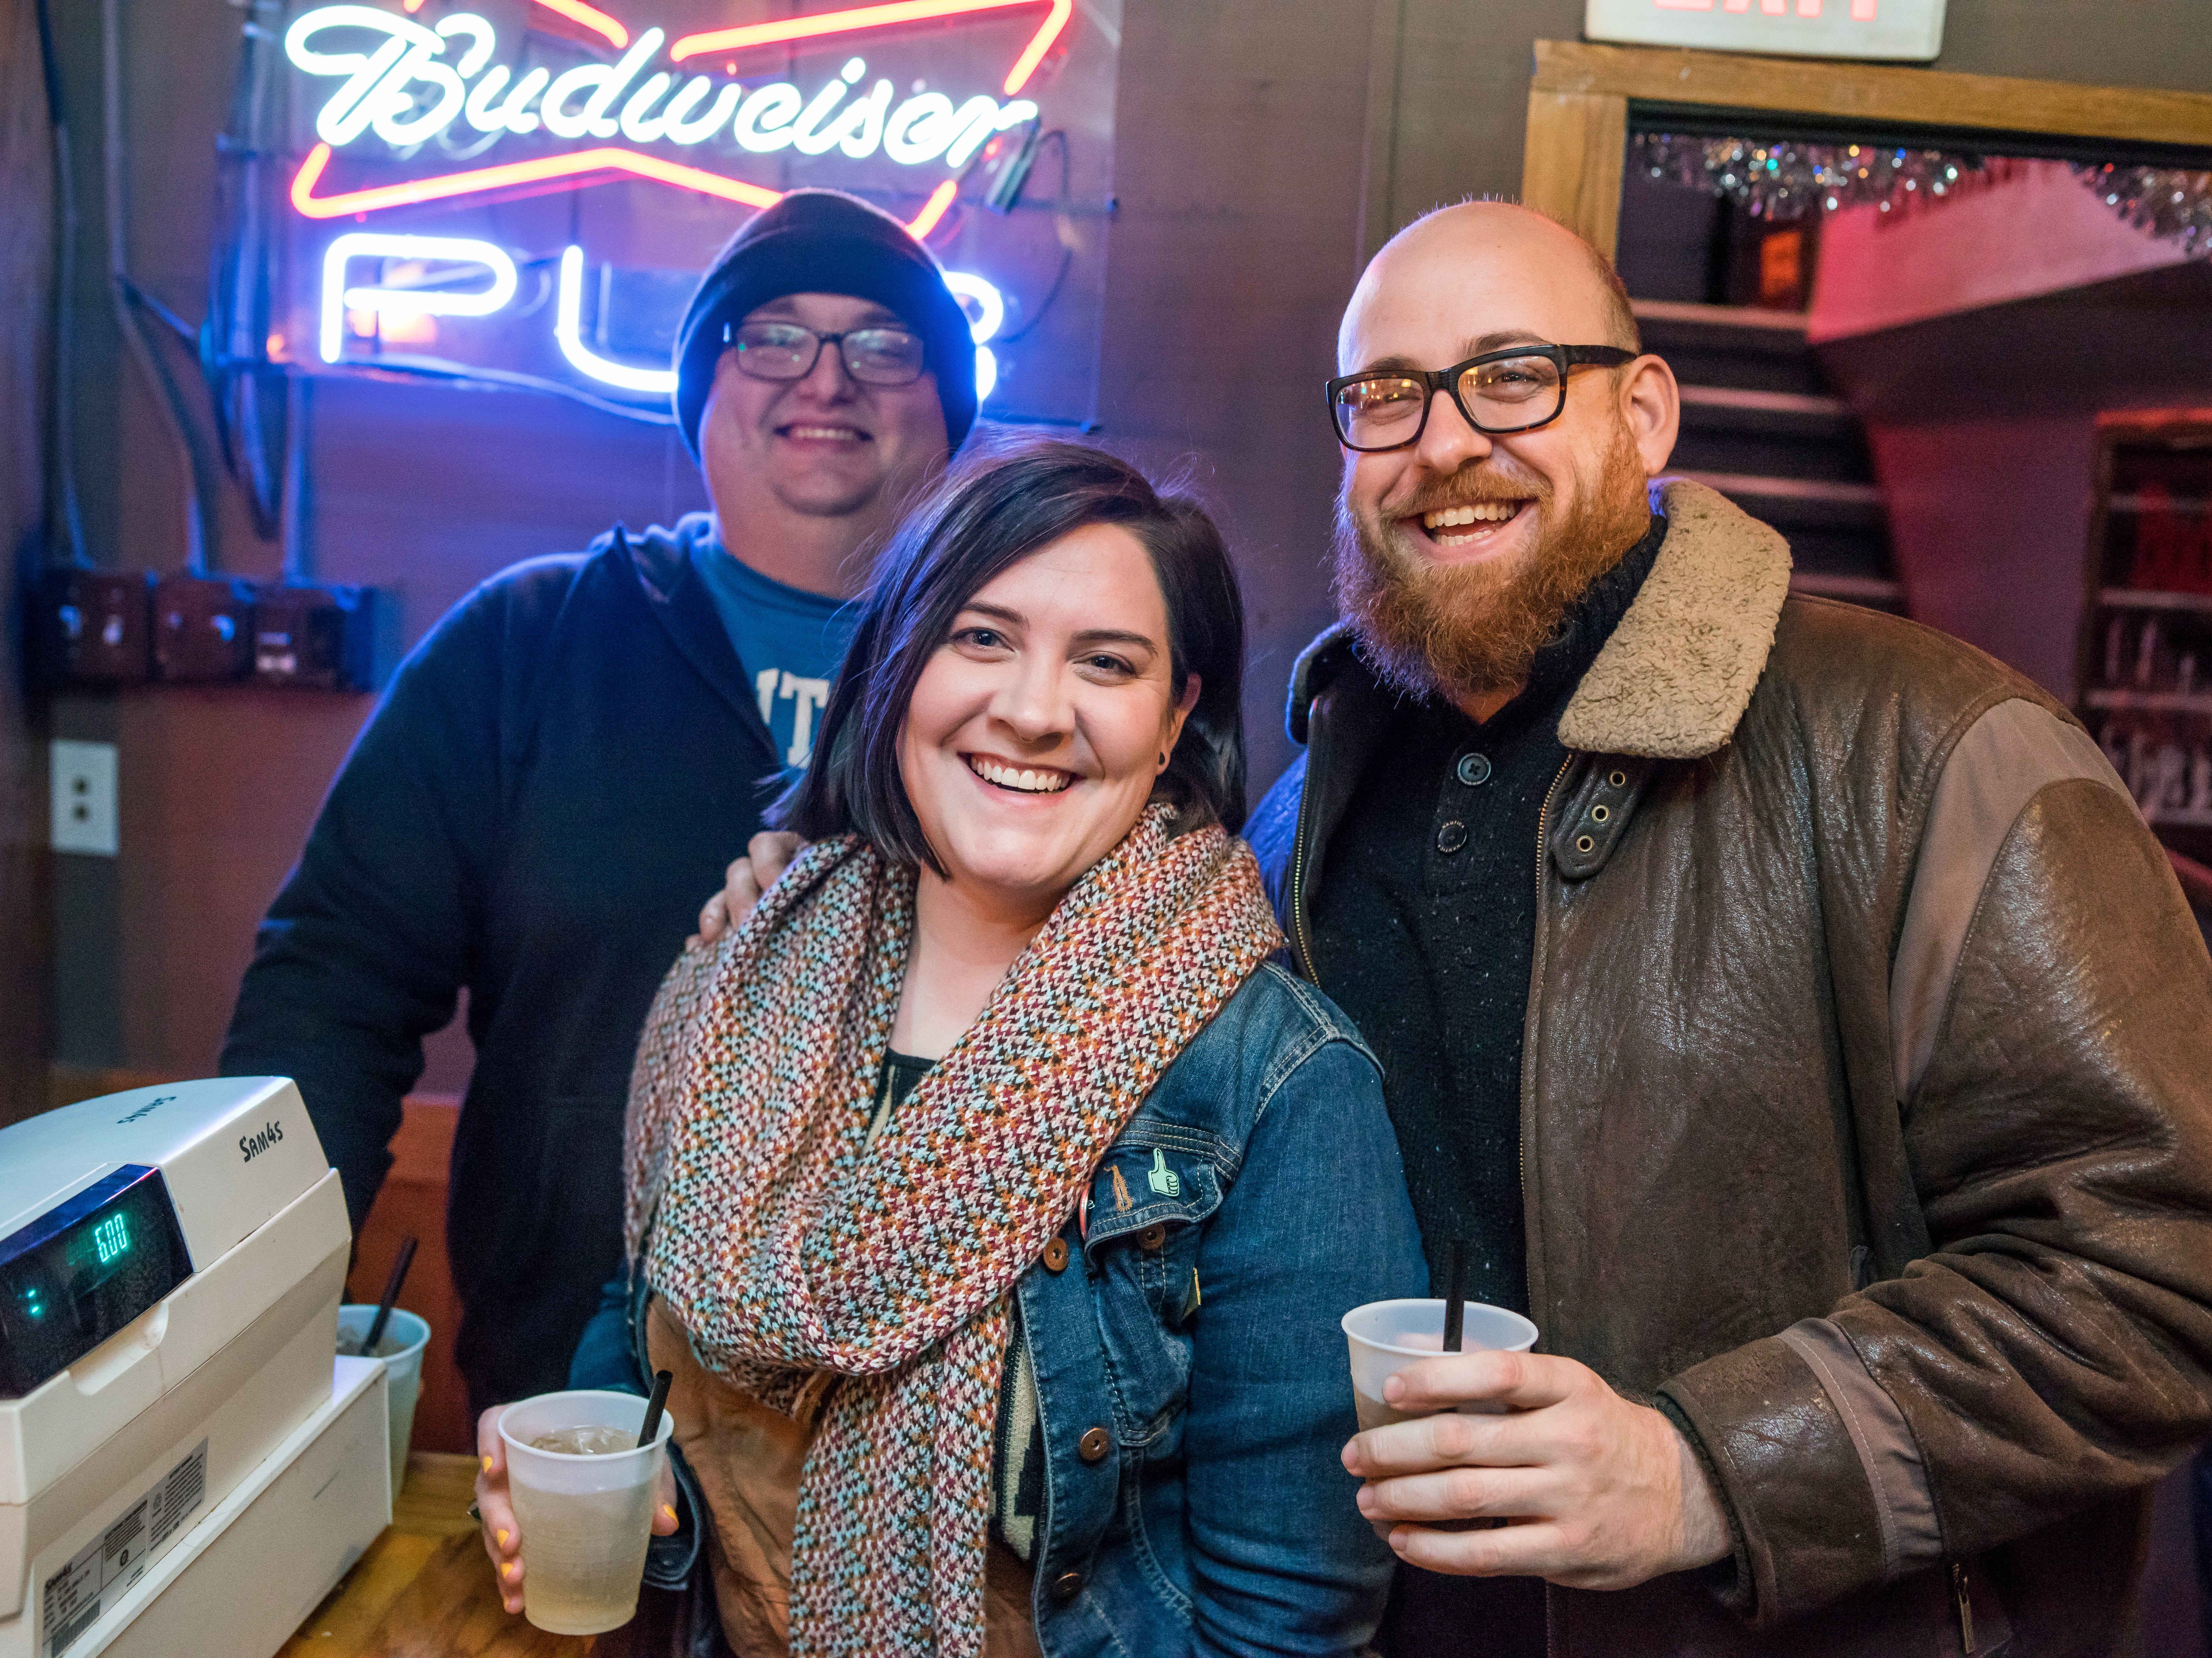 Mike Kitzman, 32, Erin Johnson, 30, and Will Frazier, 37, all of Des Moines, having some laughs, Friday, Friday, Dec. 21, at the Bomb Shelter Comedy Showcase, hosted by the Beechwood.